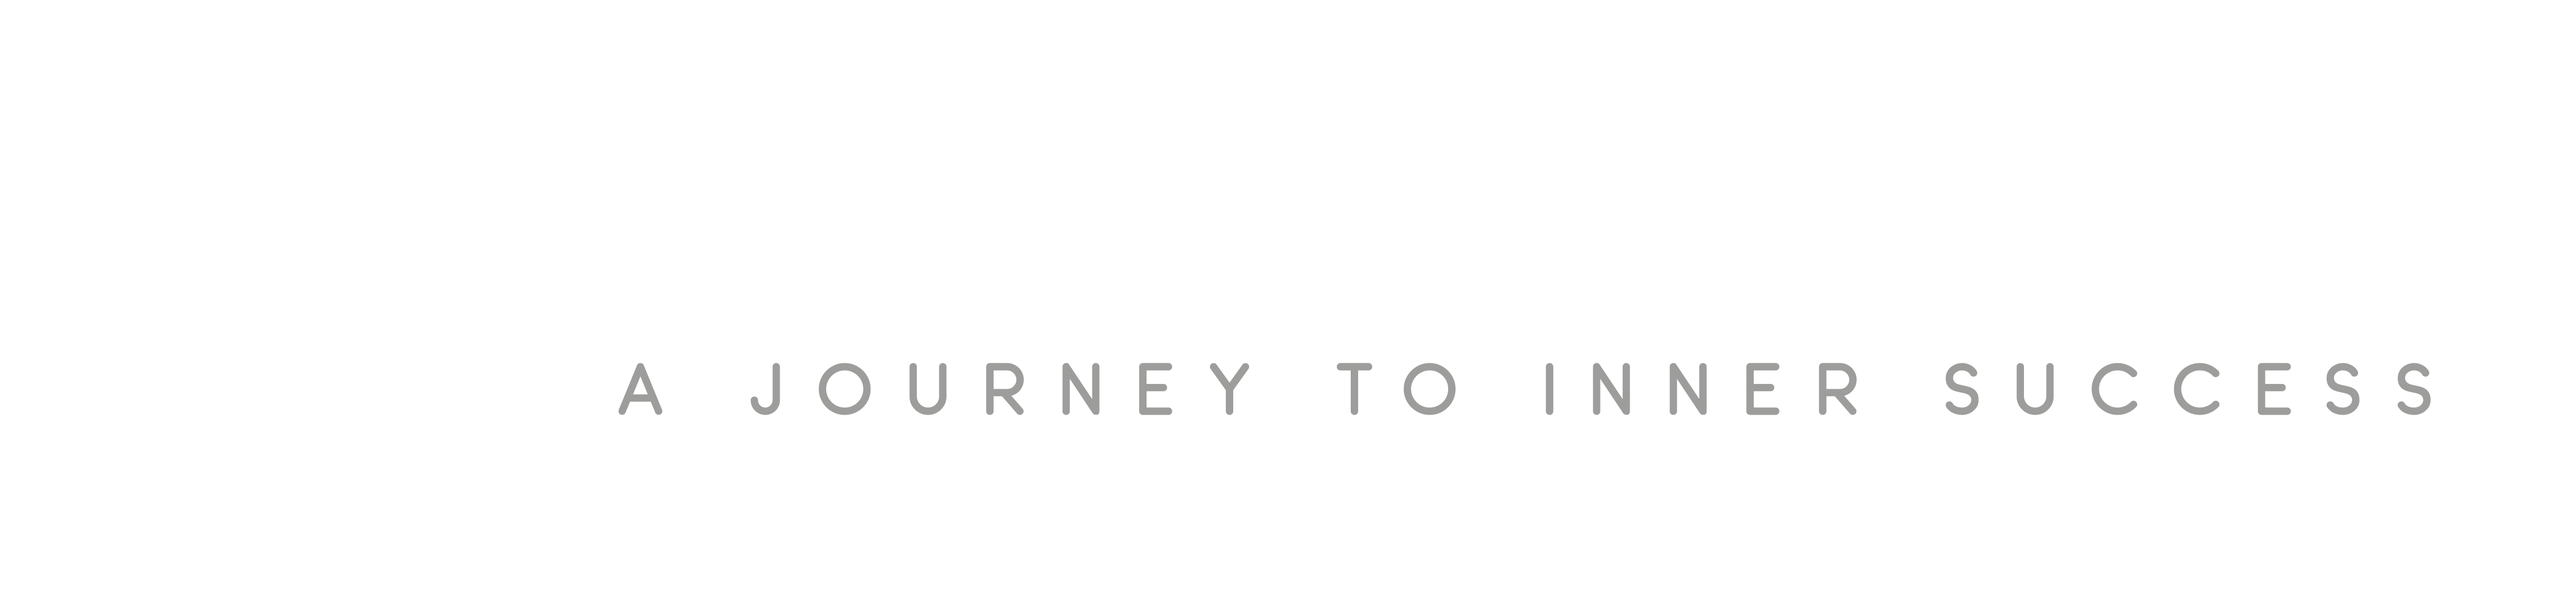 Connect With Joy